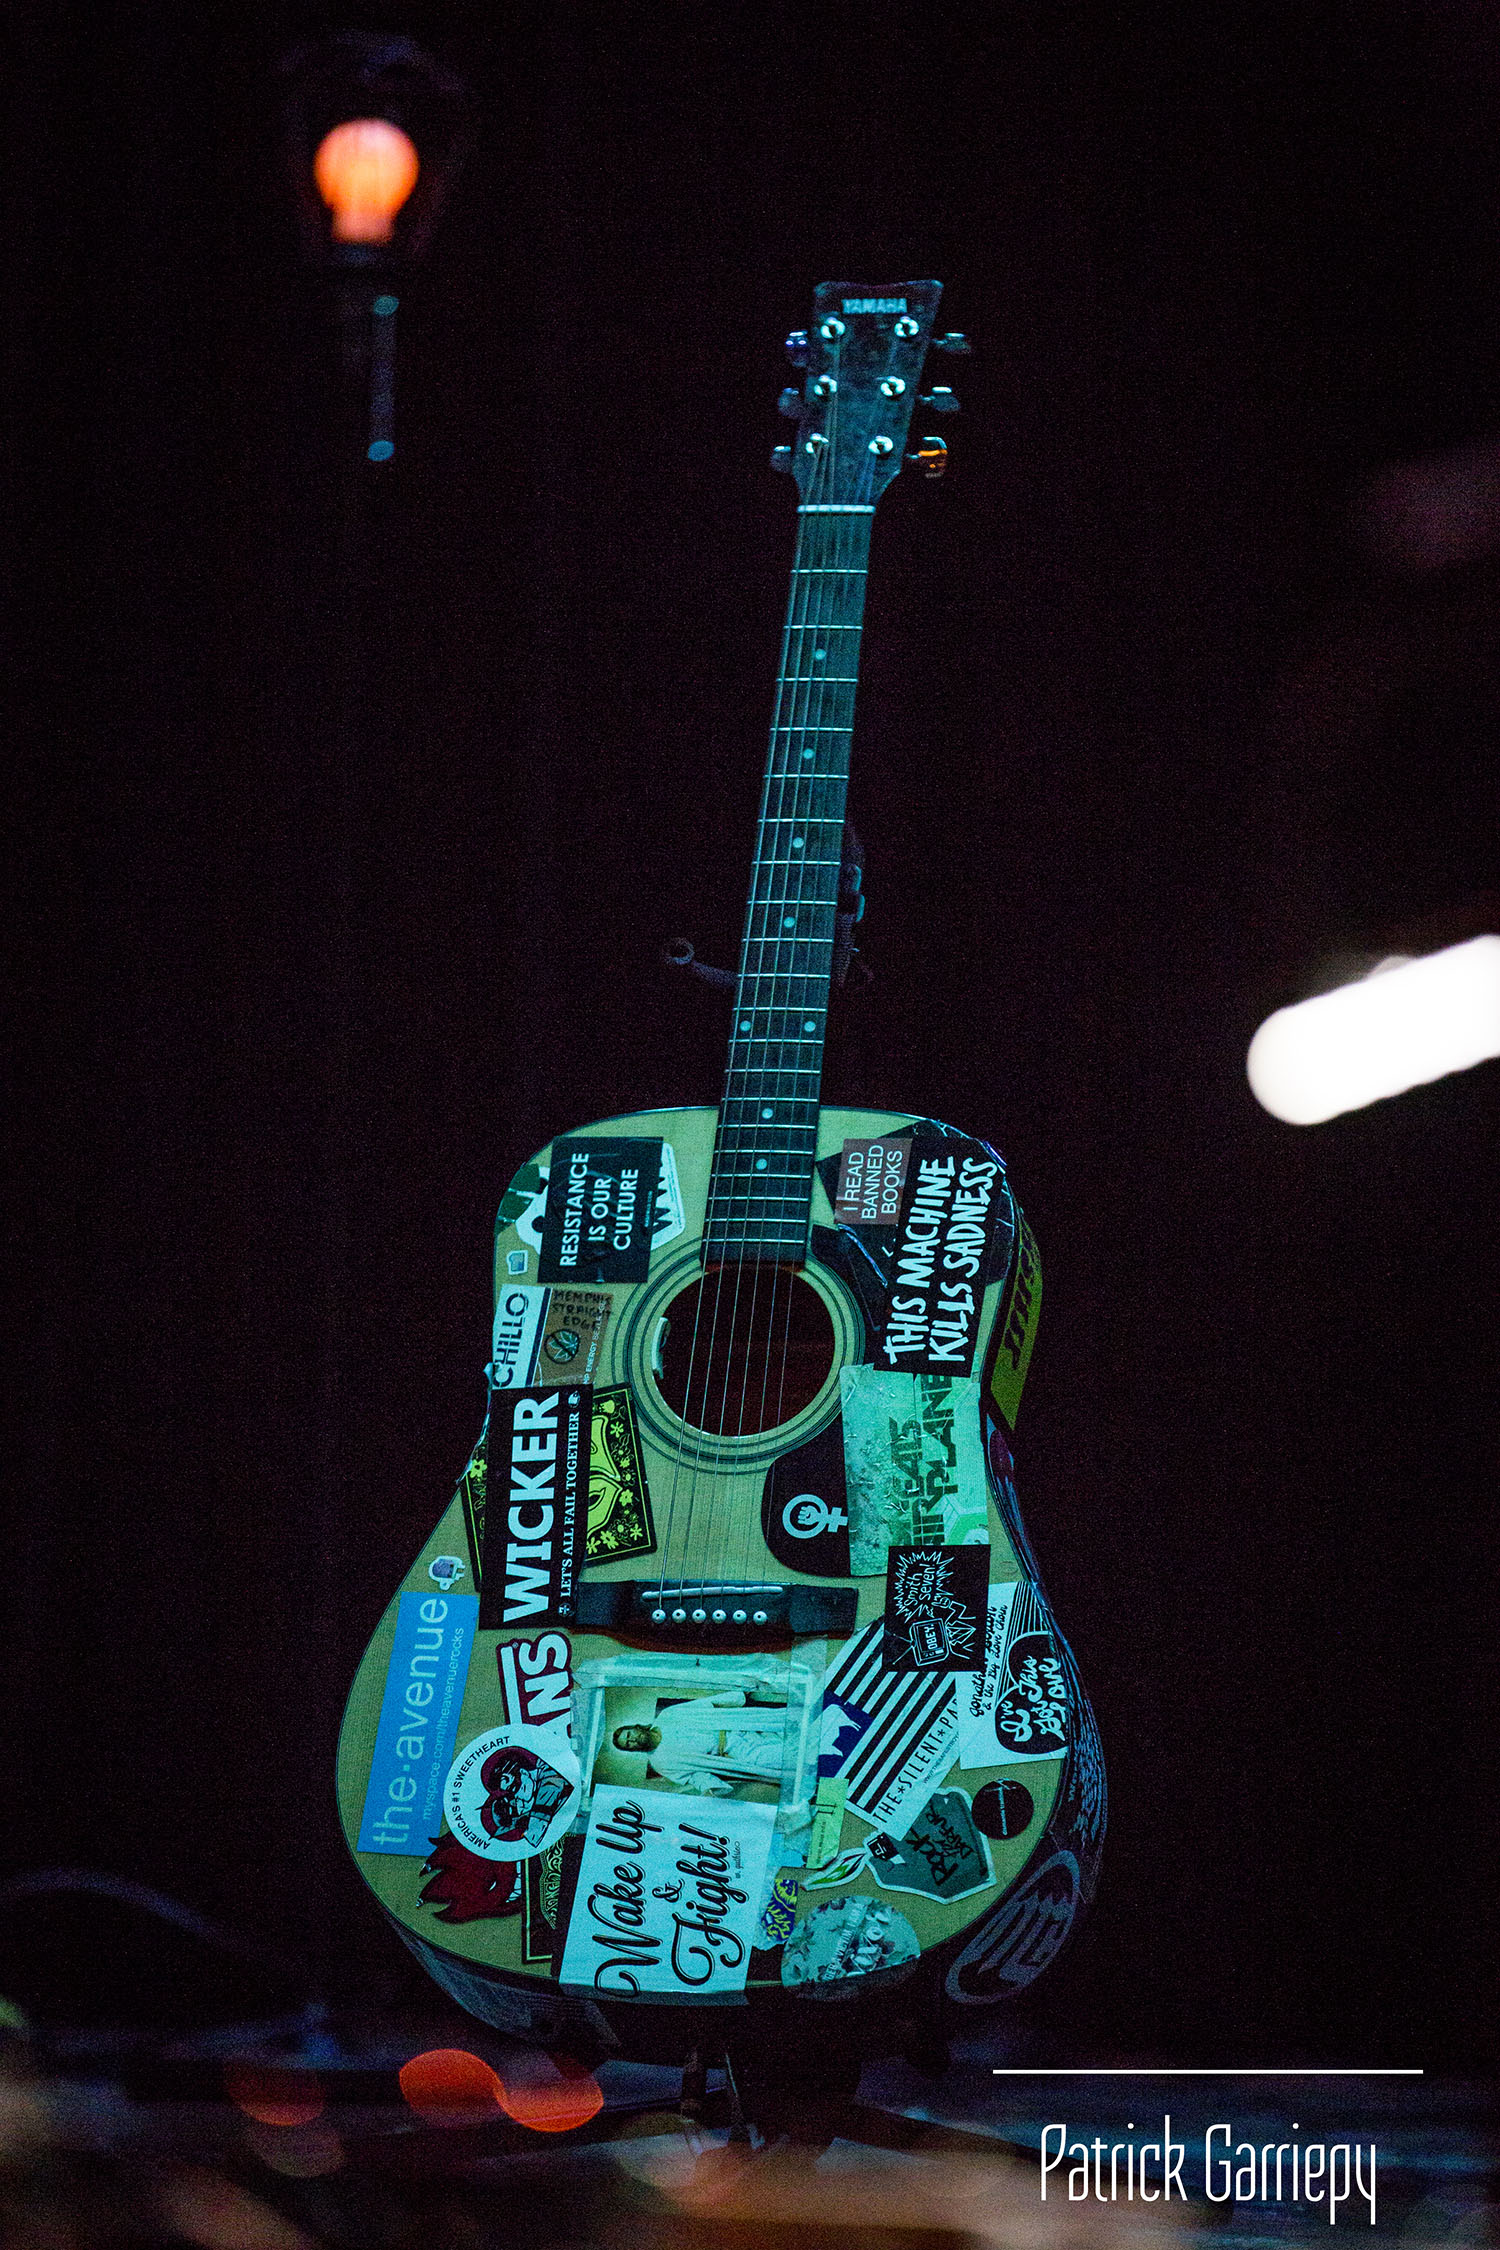 Baker's acoustic guitar on stage.